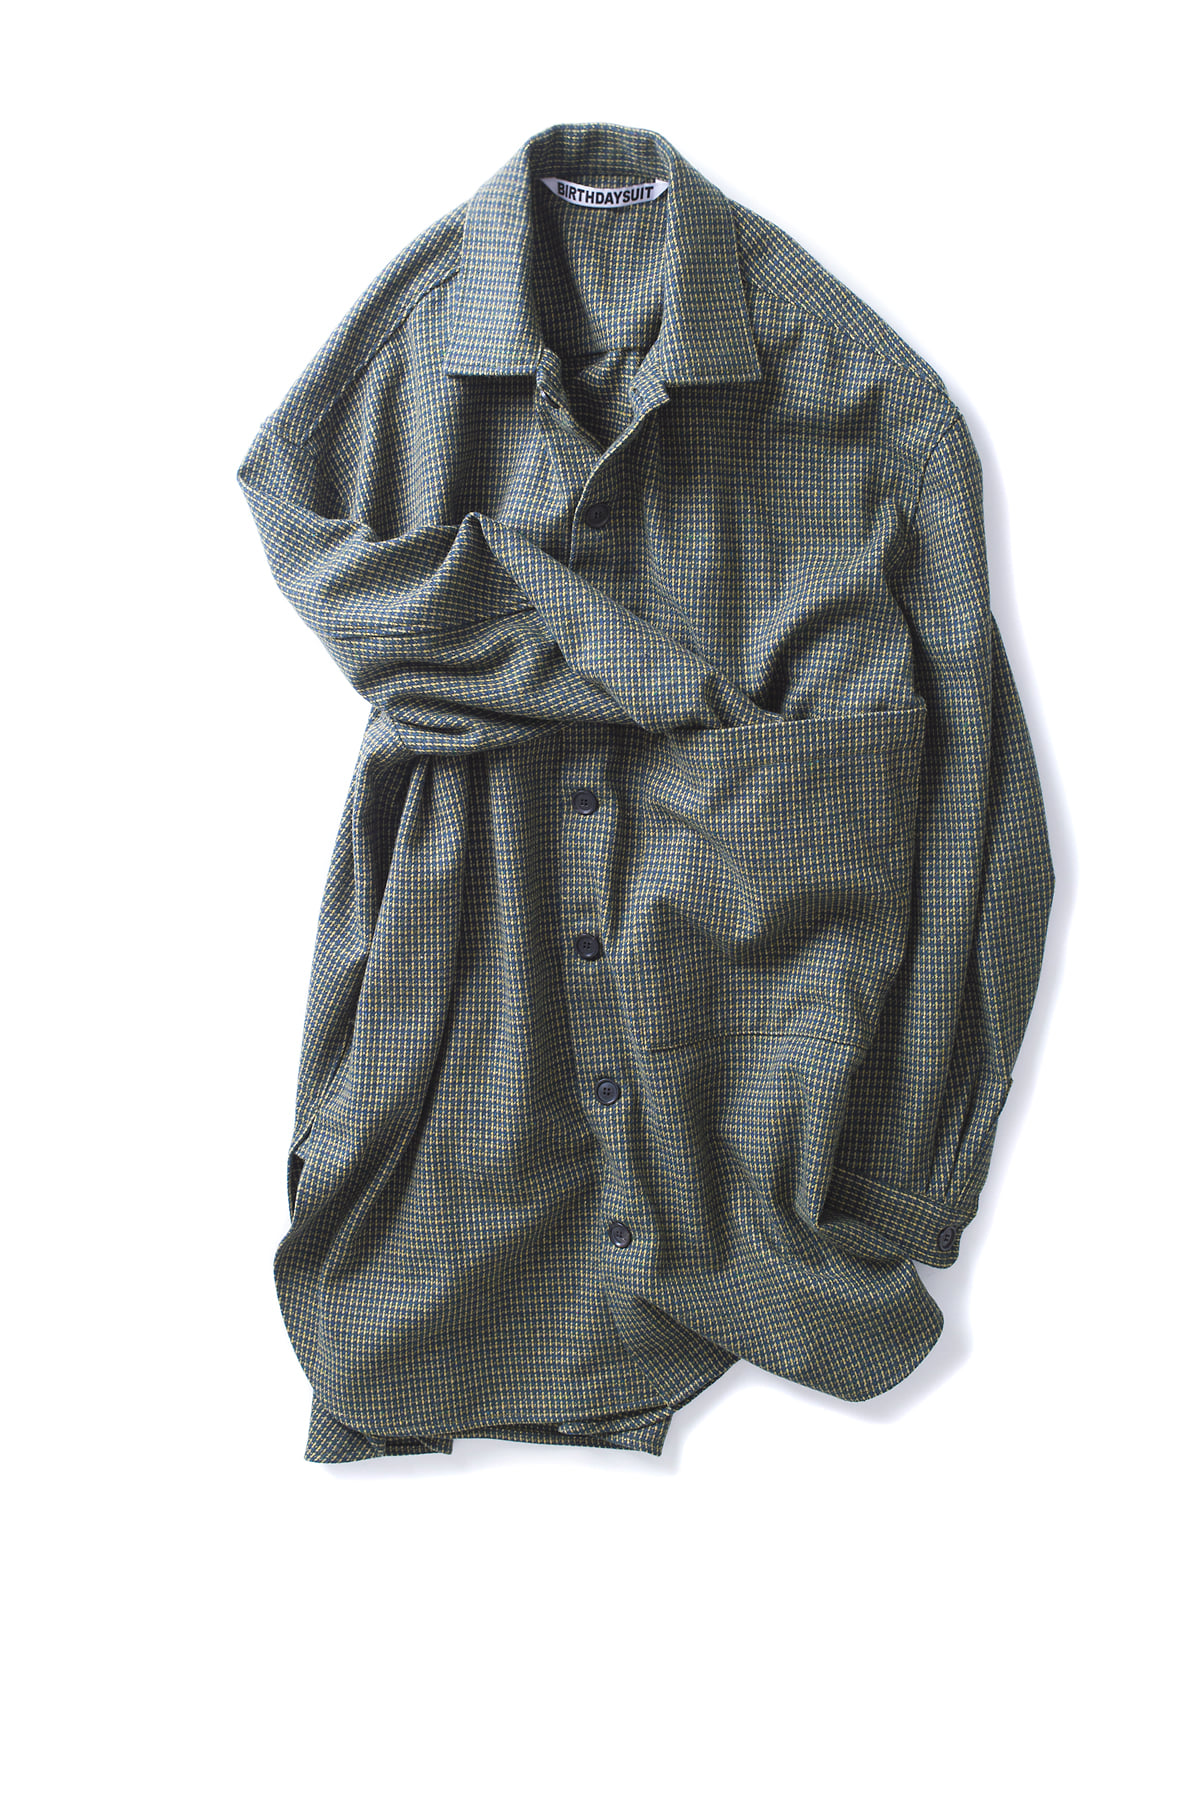 BIRTHDAYSUIT : Oversized Check Shirt Coat (Green)